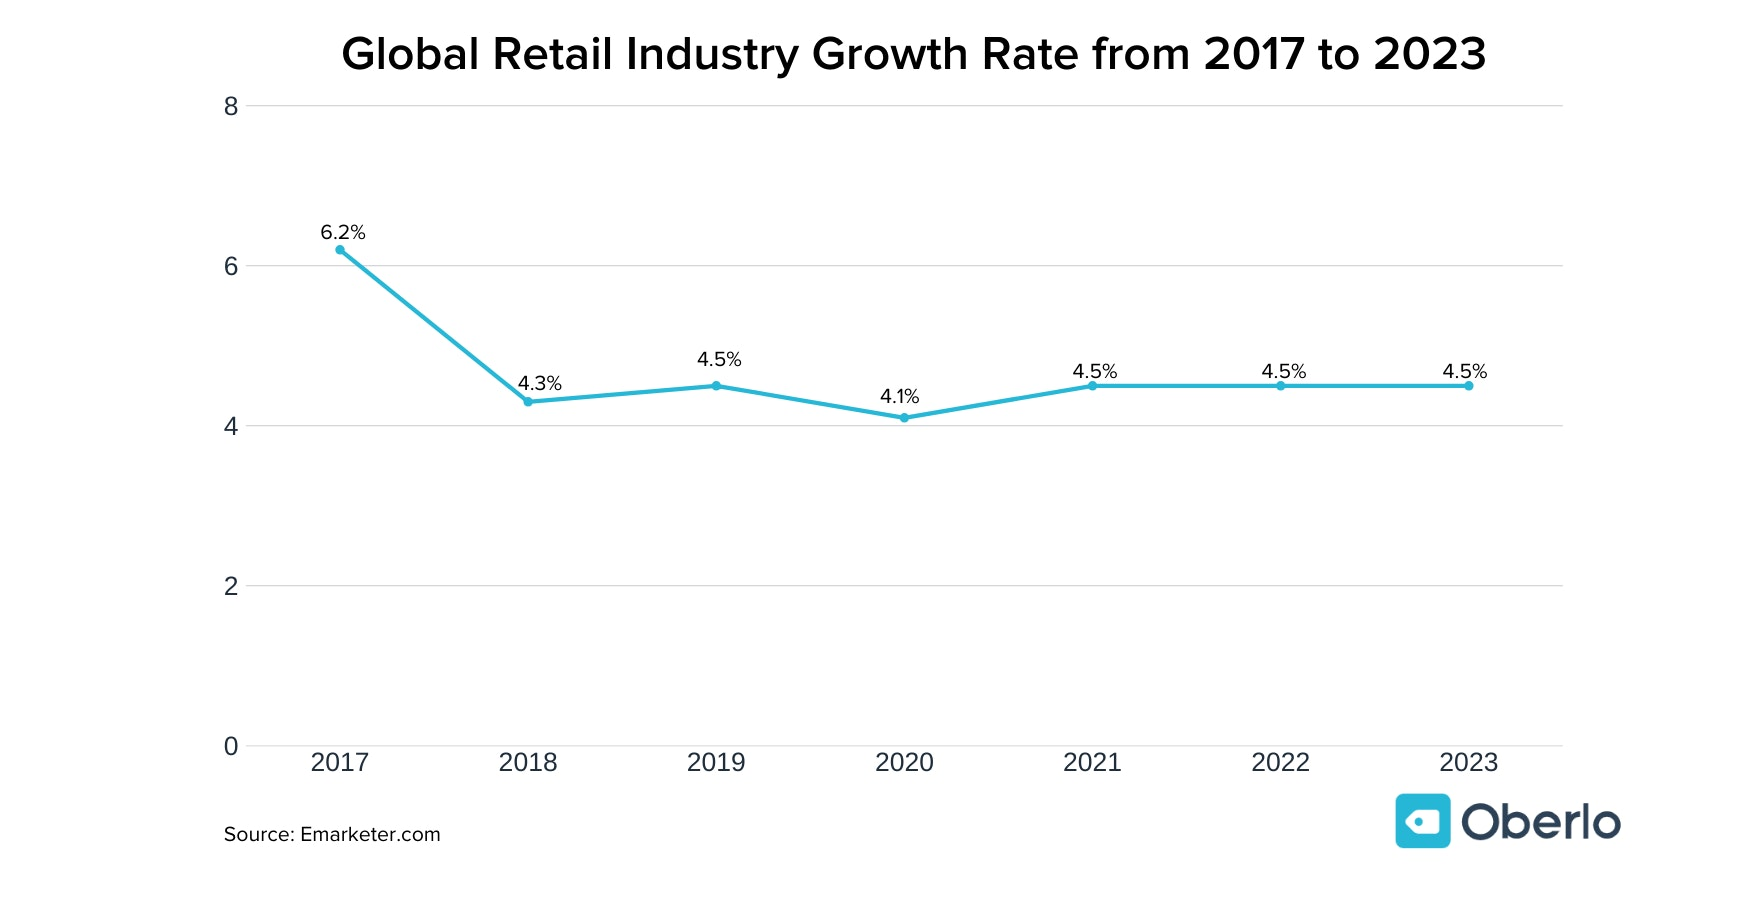 Global Retail Industry Growth Rate